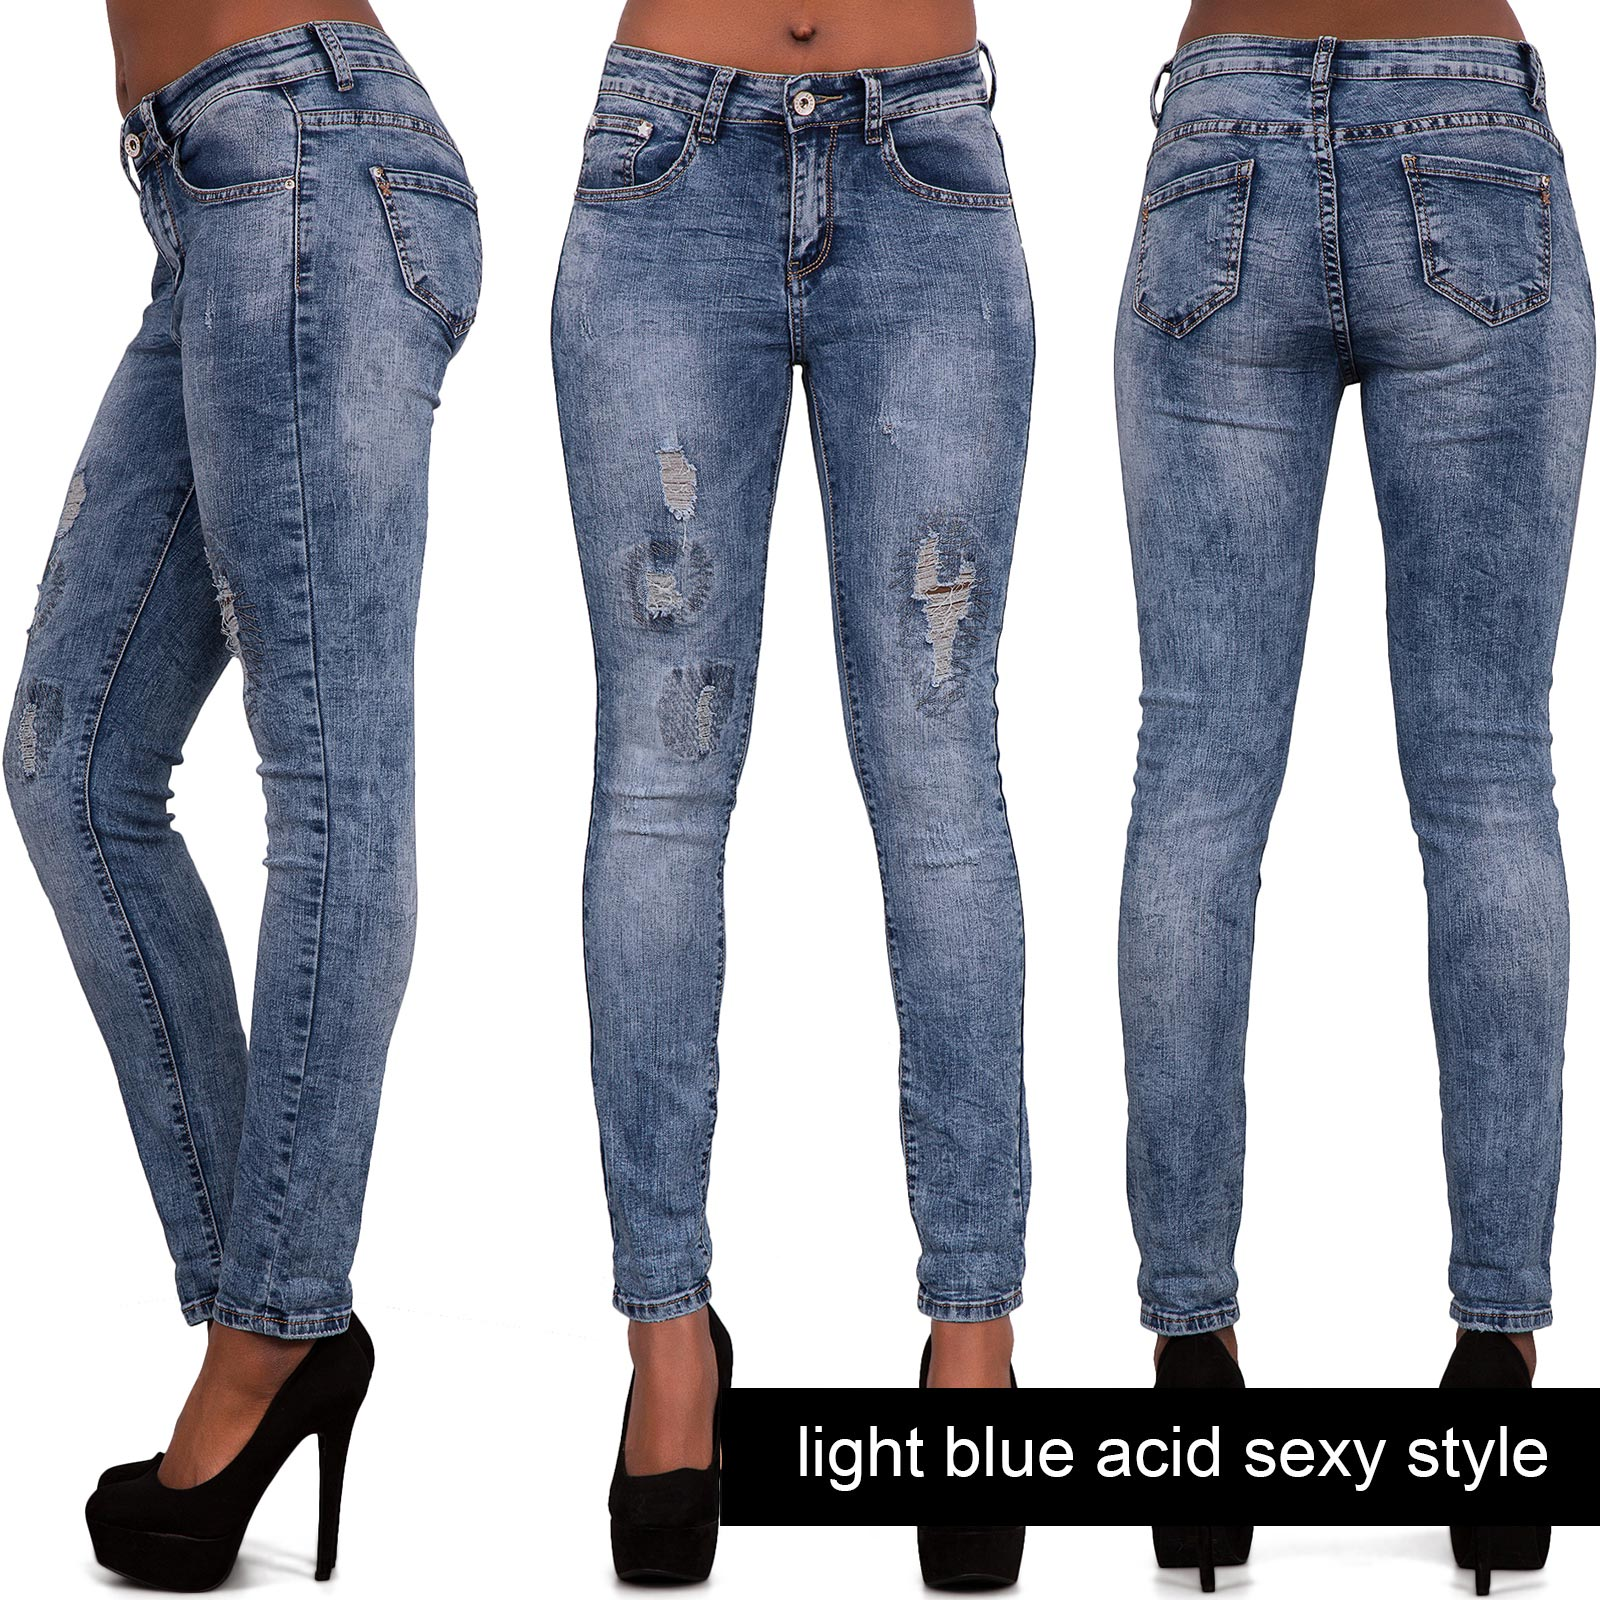 Jeans Whether you're looking for something striking or for the perfect pair for casual use, Simply Be has all plus size jeans covered, from sizes Choose from plus sized bootcut, straight, slim, or go for skinny to really accentuate and flaunt your curves.